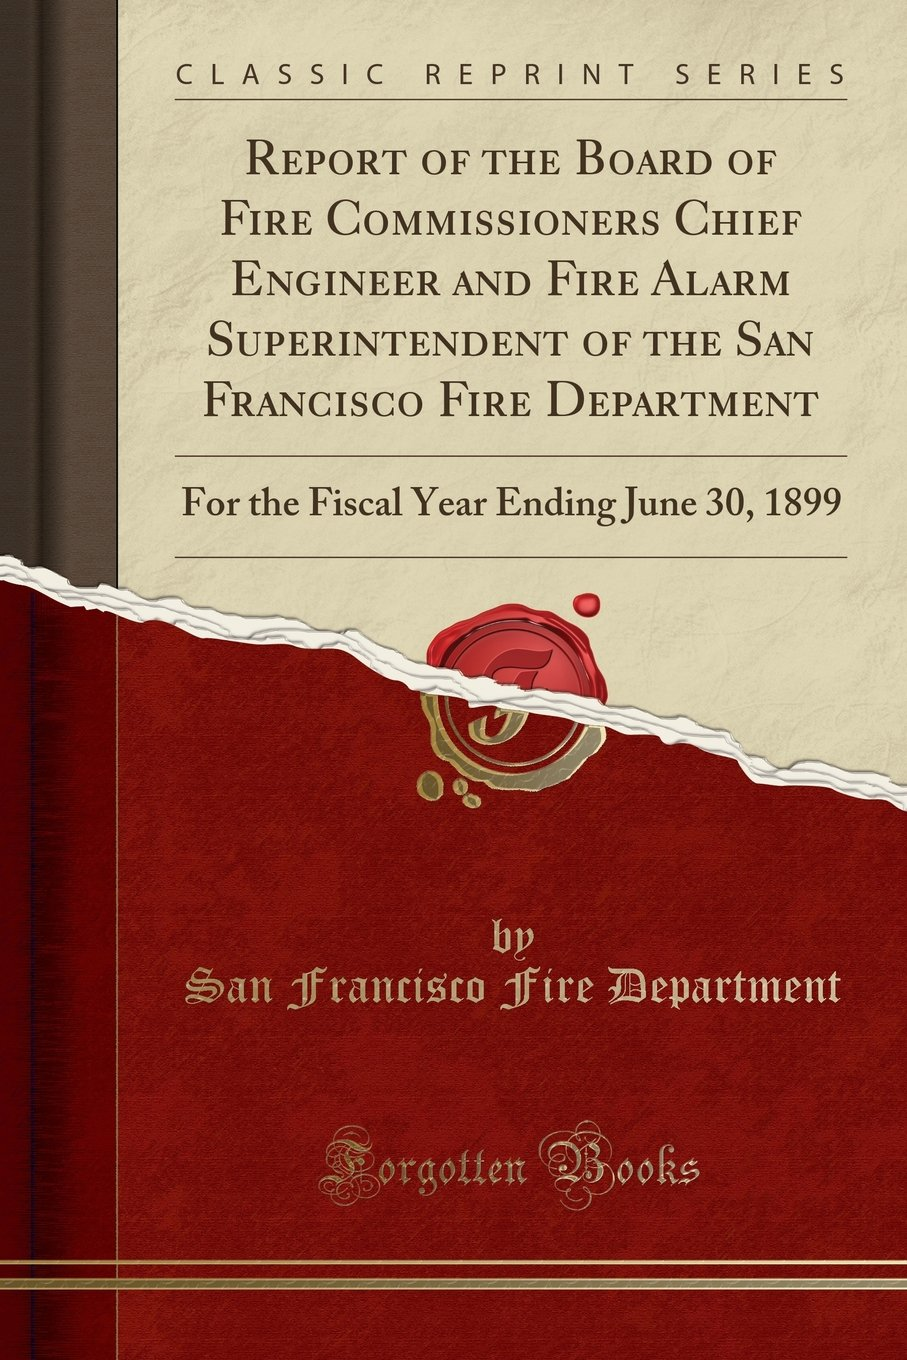 Report of the Board of Fire Commissioners Chief Engineer and Fire Alarm Superintendent of the San Francisco Fire Department: For the Fiscal Year Ending June 30, 1899 (Classic Reprint) PDF